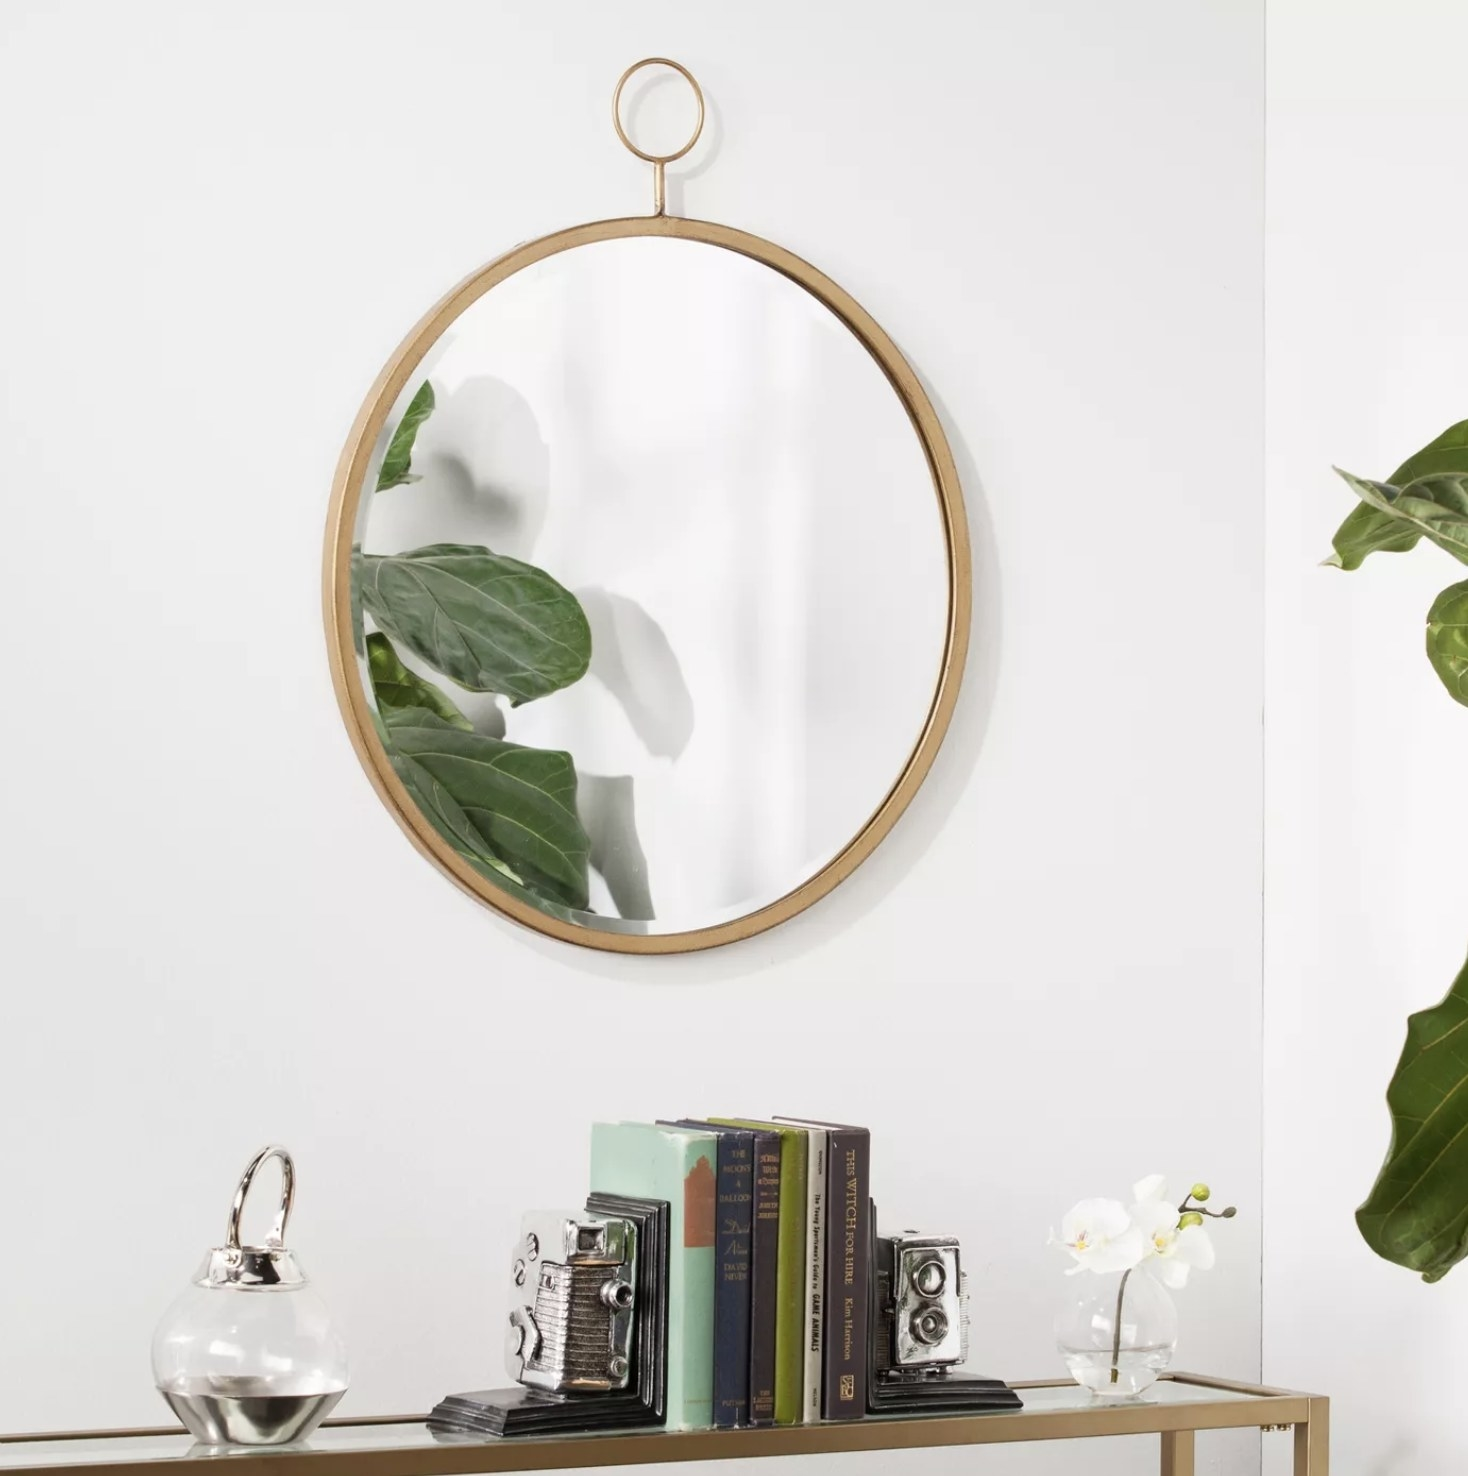 A bronze decorative wall mirror is hung above an entryway table on a white wall